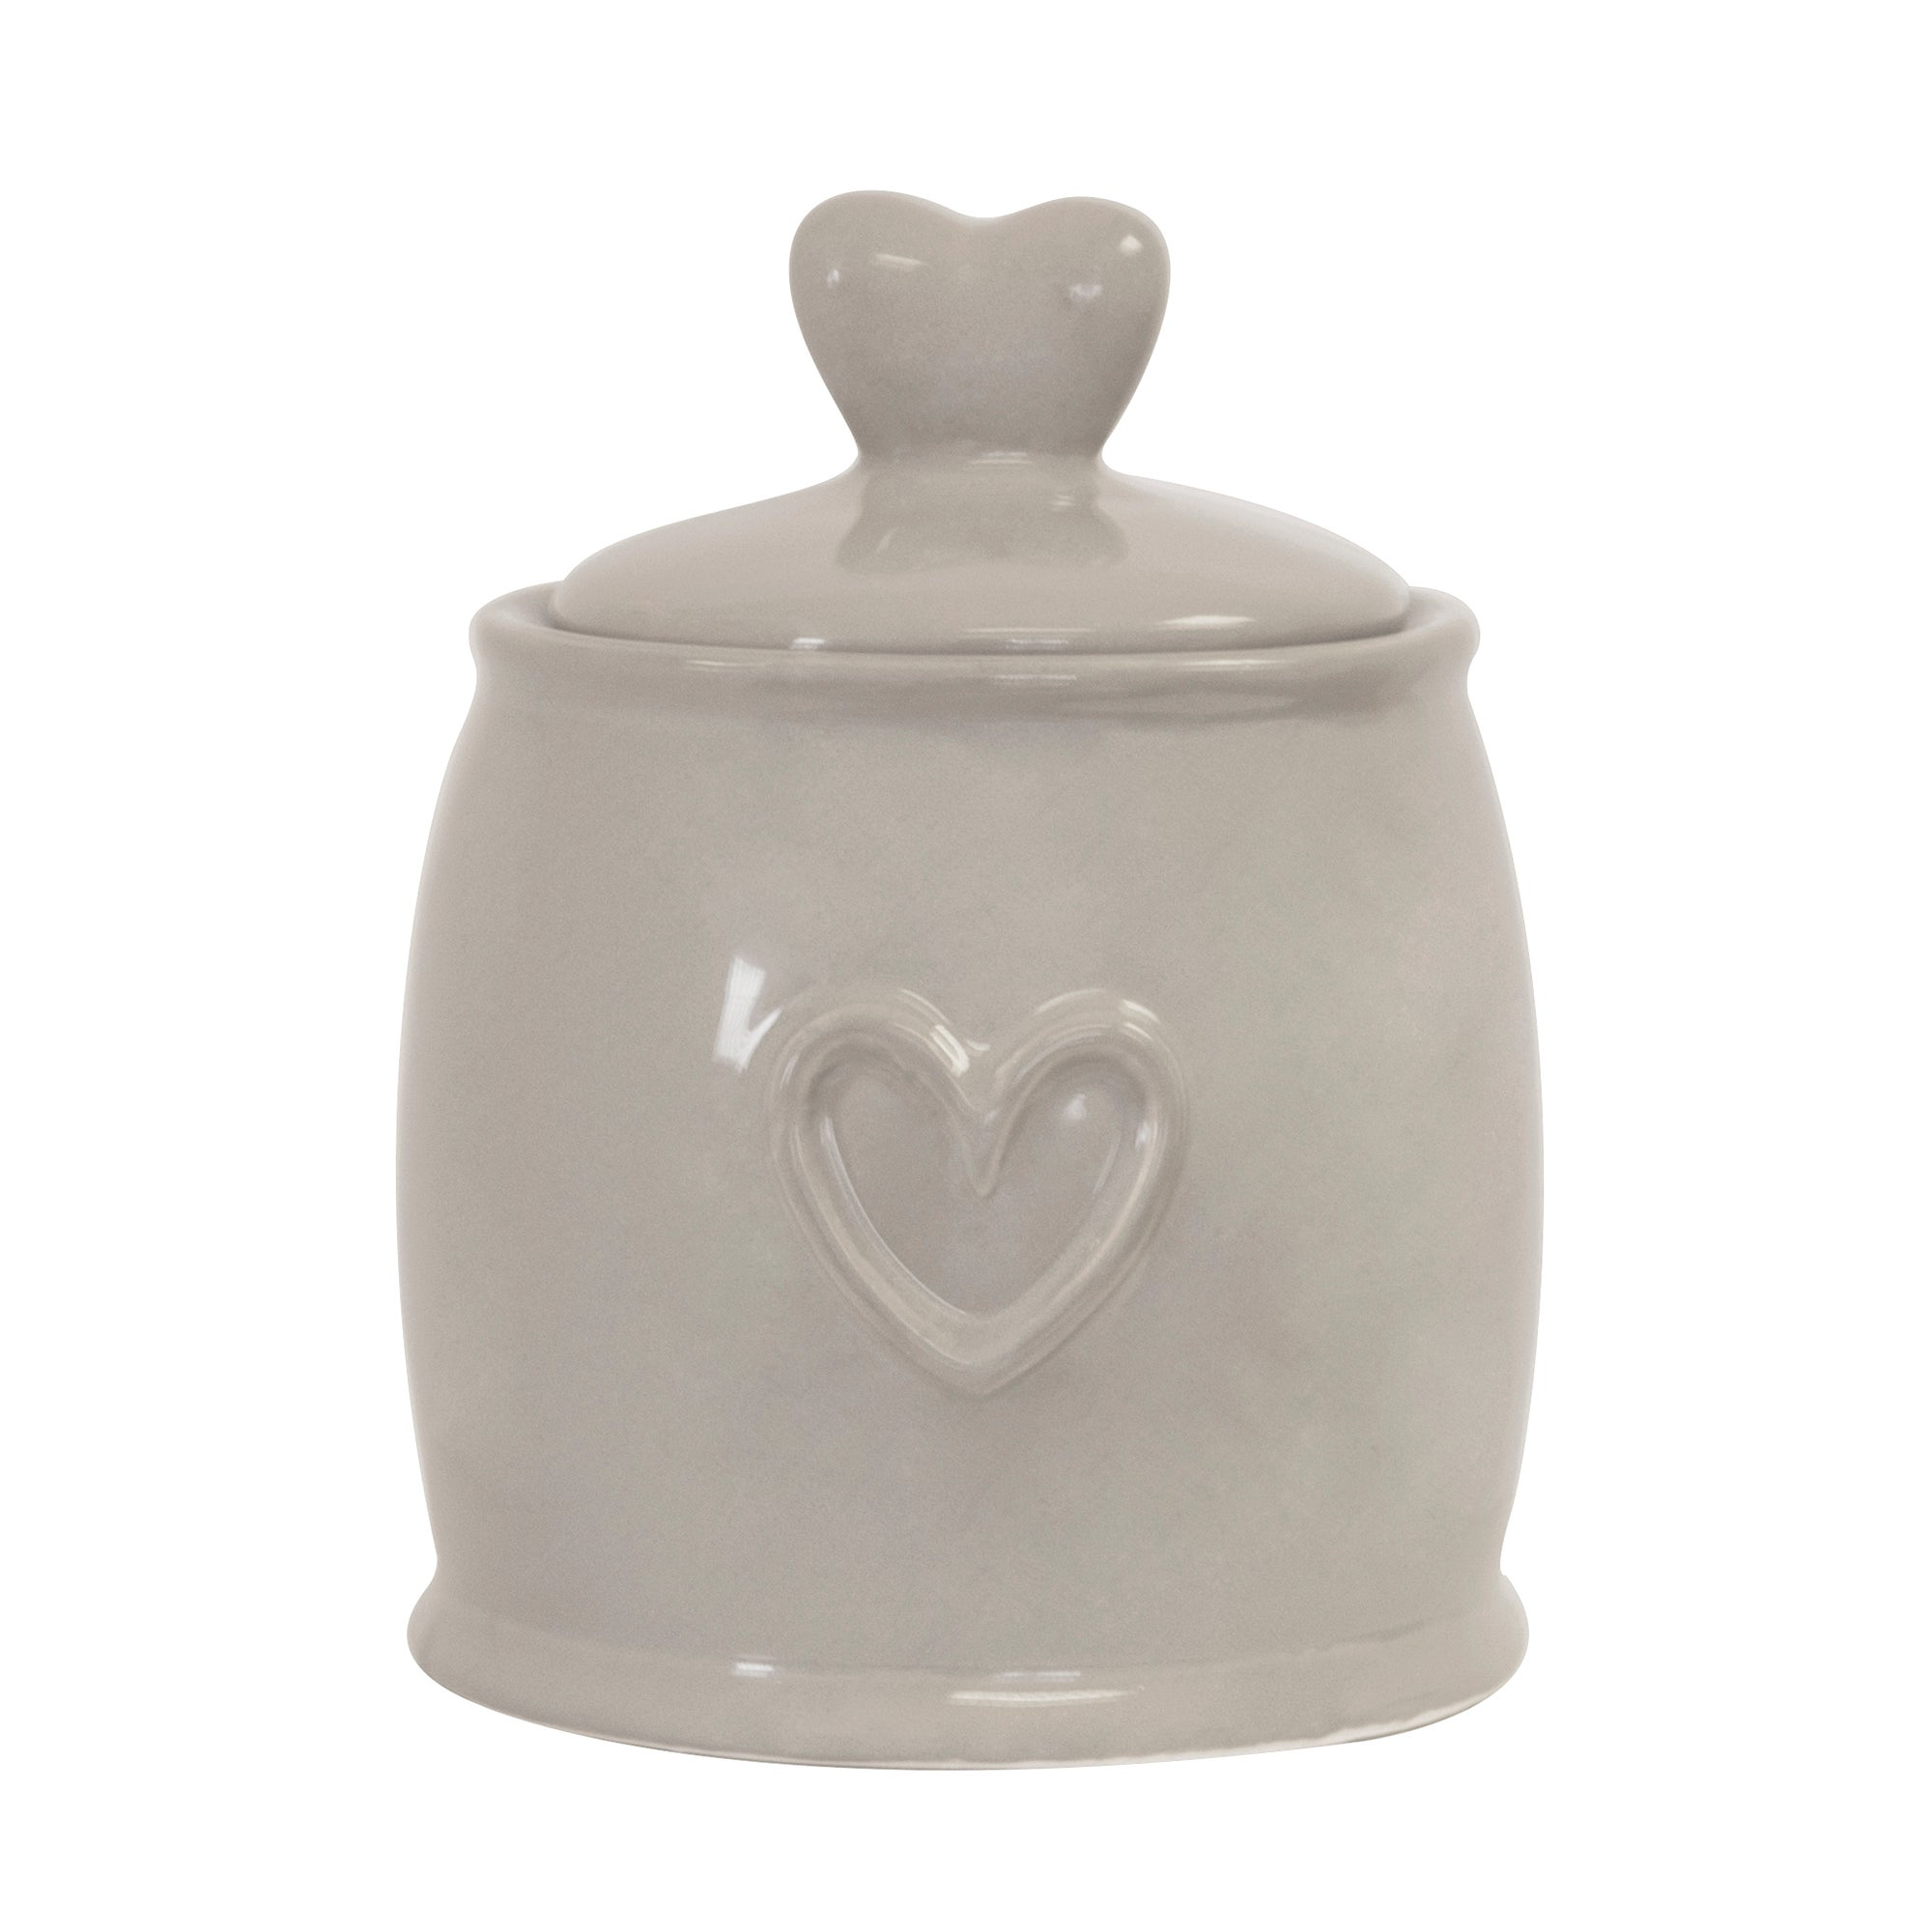 Taupe Country Heart Collection Sugar Storage Jar